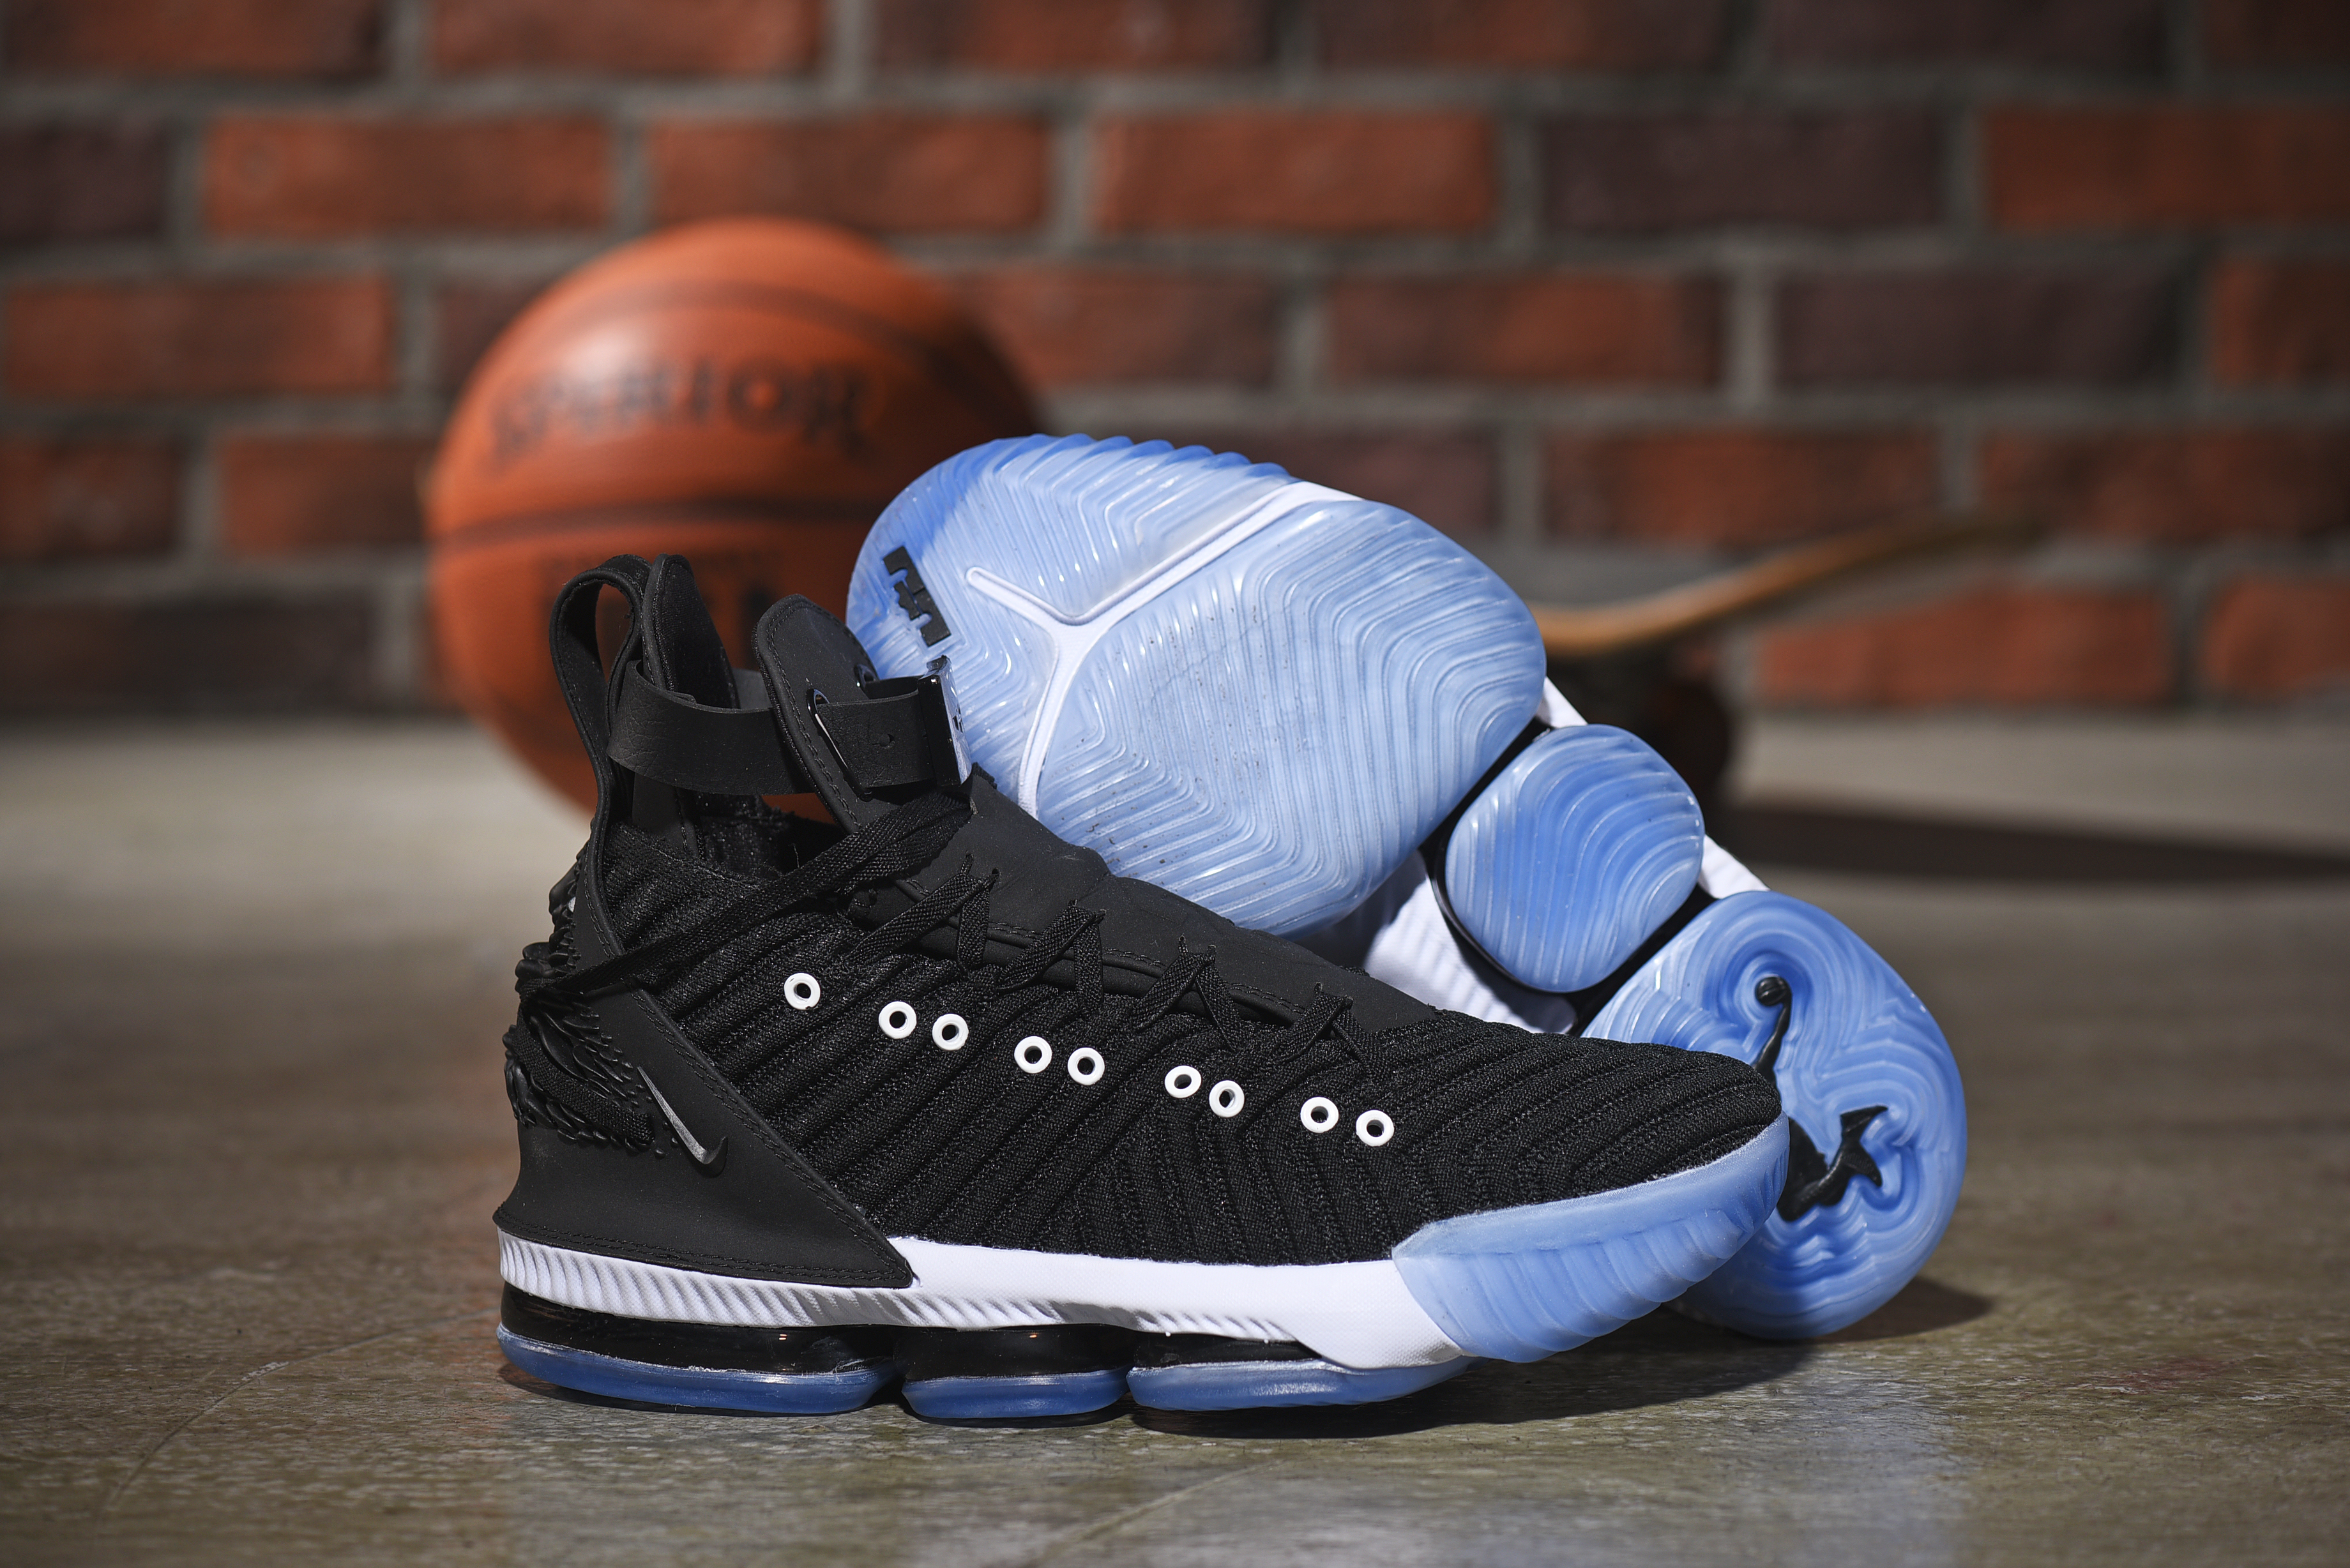 Nike LeBron 16 Emboss Black White Blue Sole Shoes